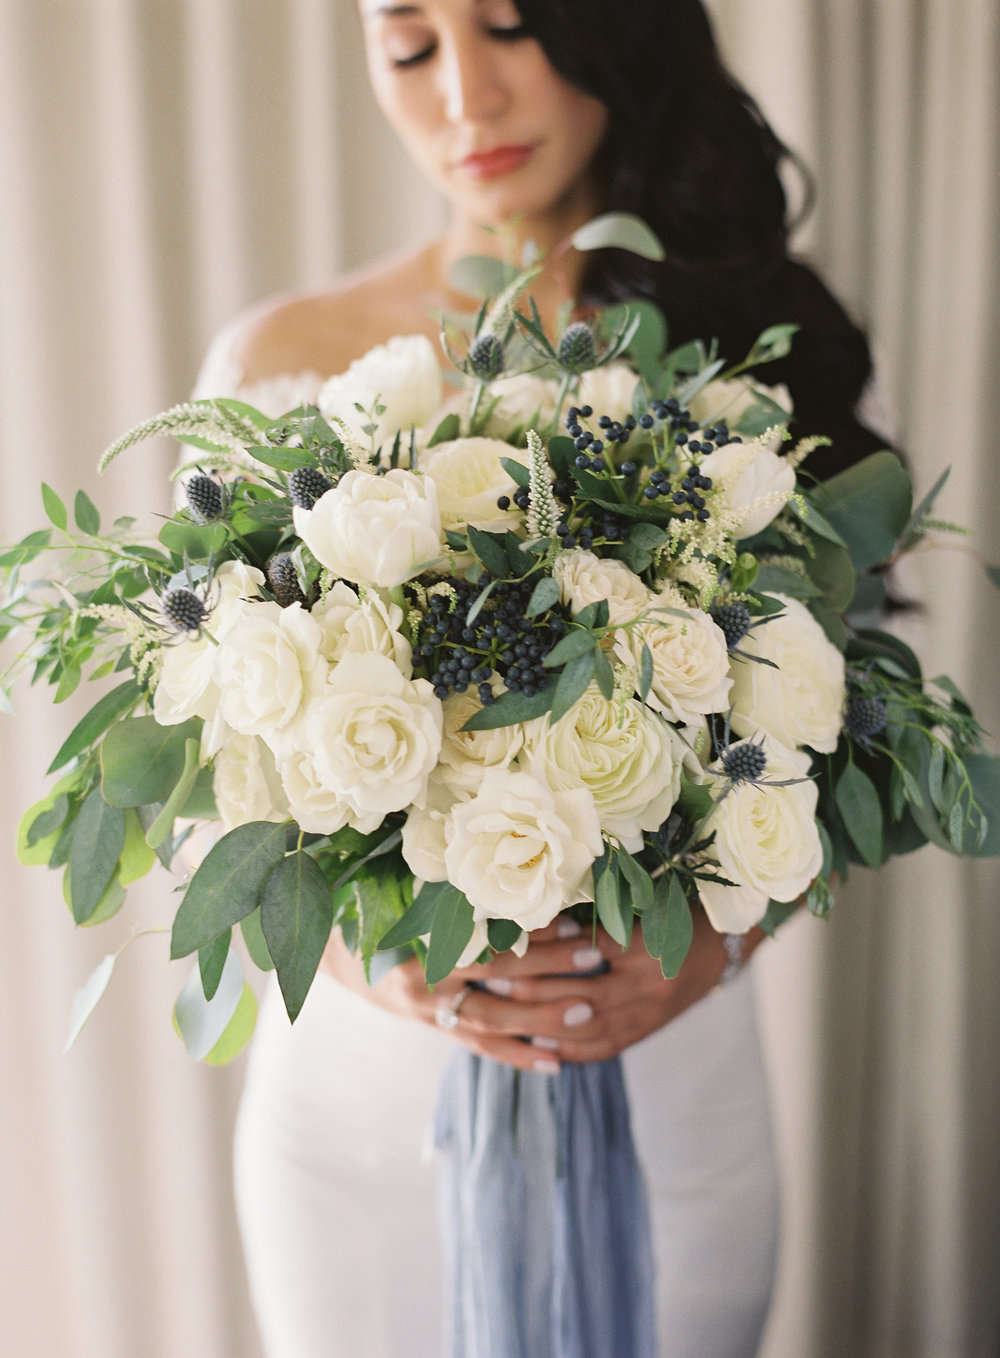 Photography -  Linda Chaja Photography   White Alabaster Garden Rose - Year Round  White Majolika Spray Rose - Year Round  White Astilbe - Year Round  White Double Tulip - Spring/Summer/Winter  White Veronica - Year Round  Blue Eryngium - Year Round  Navy Privet Berries - Fall/Winter